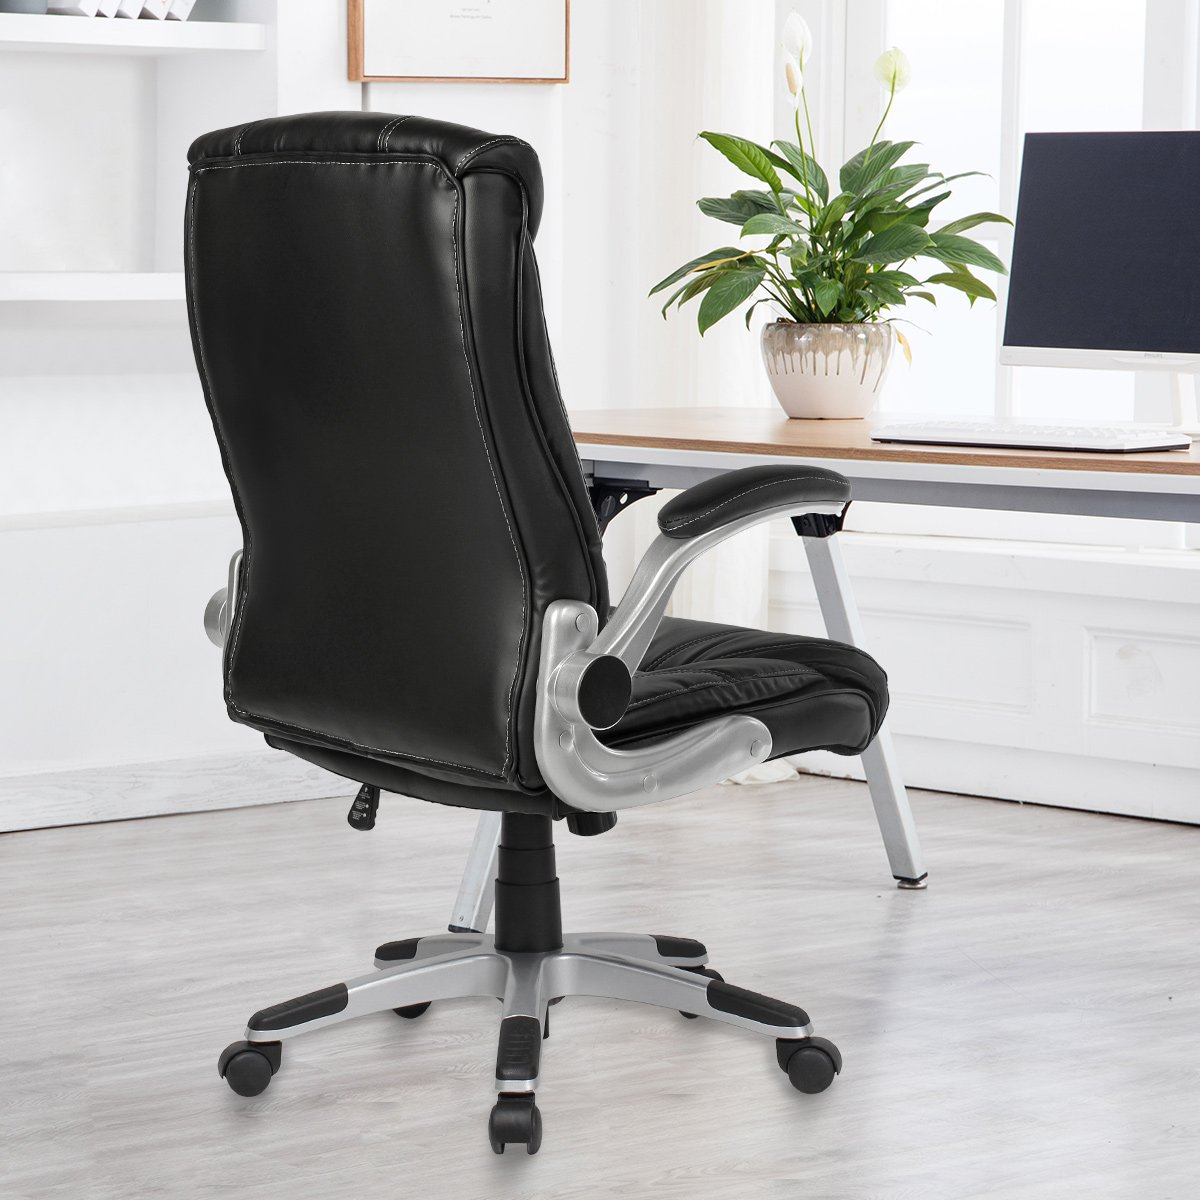 YAMASORO Ergonomic High-Back Executive Office Chair PU Leather Computer Desk Chair with Flip-up Arms and Back Support by YAMASORO (Image #9)